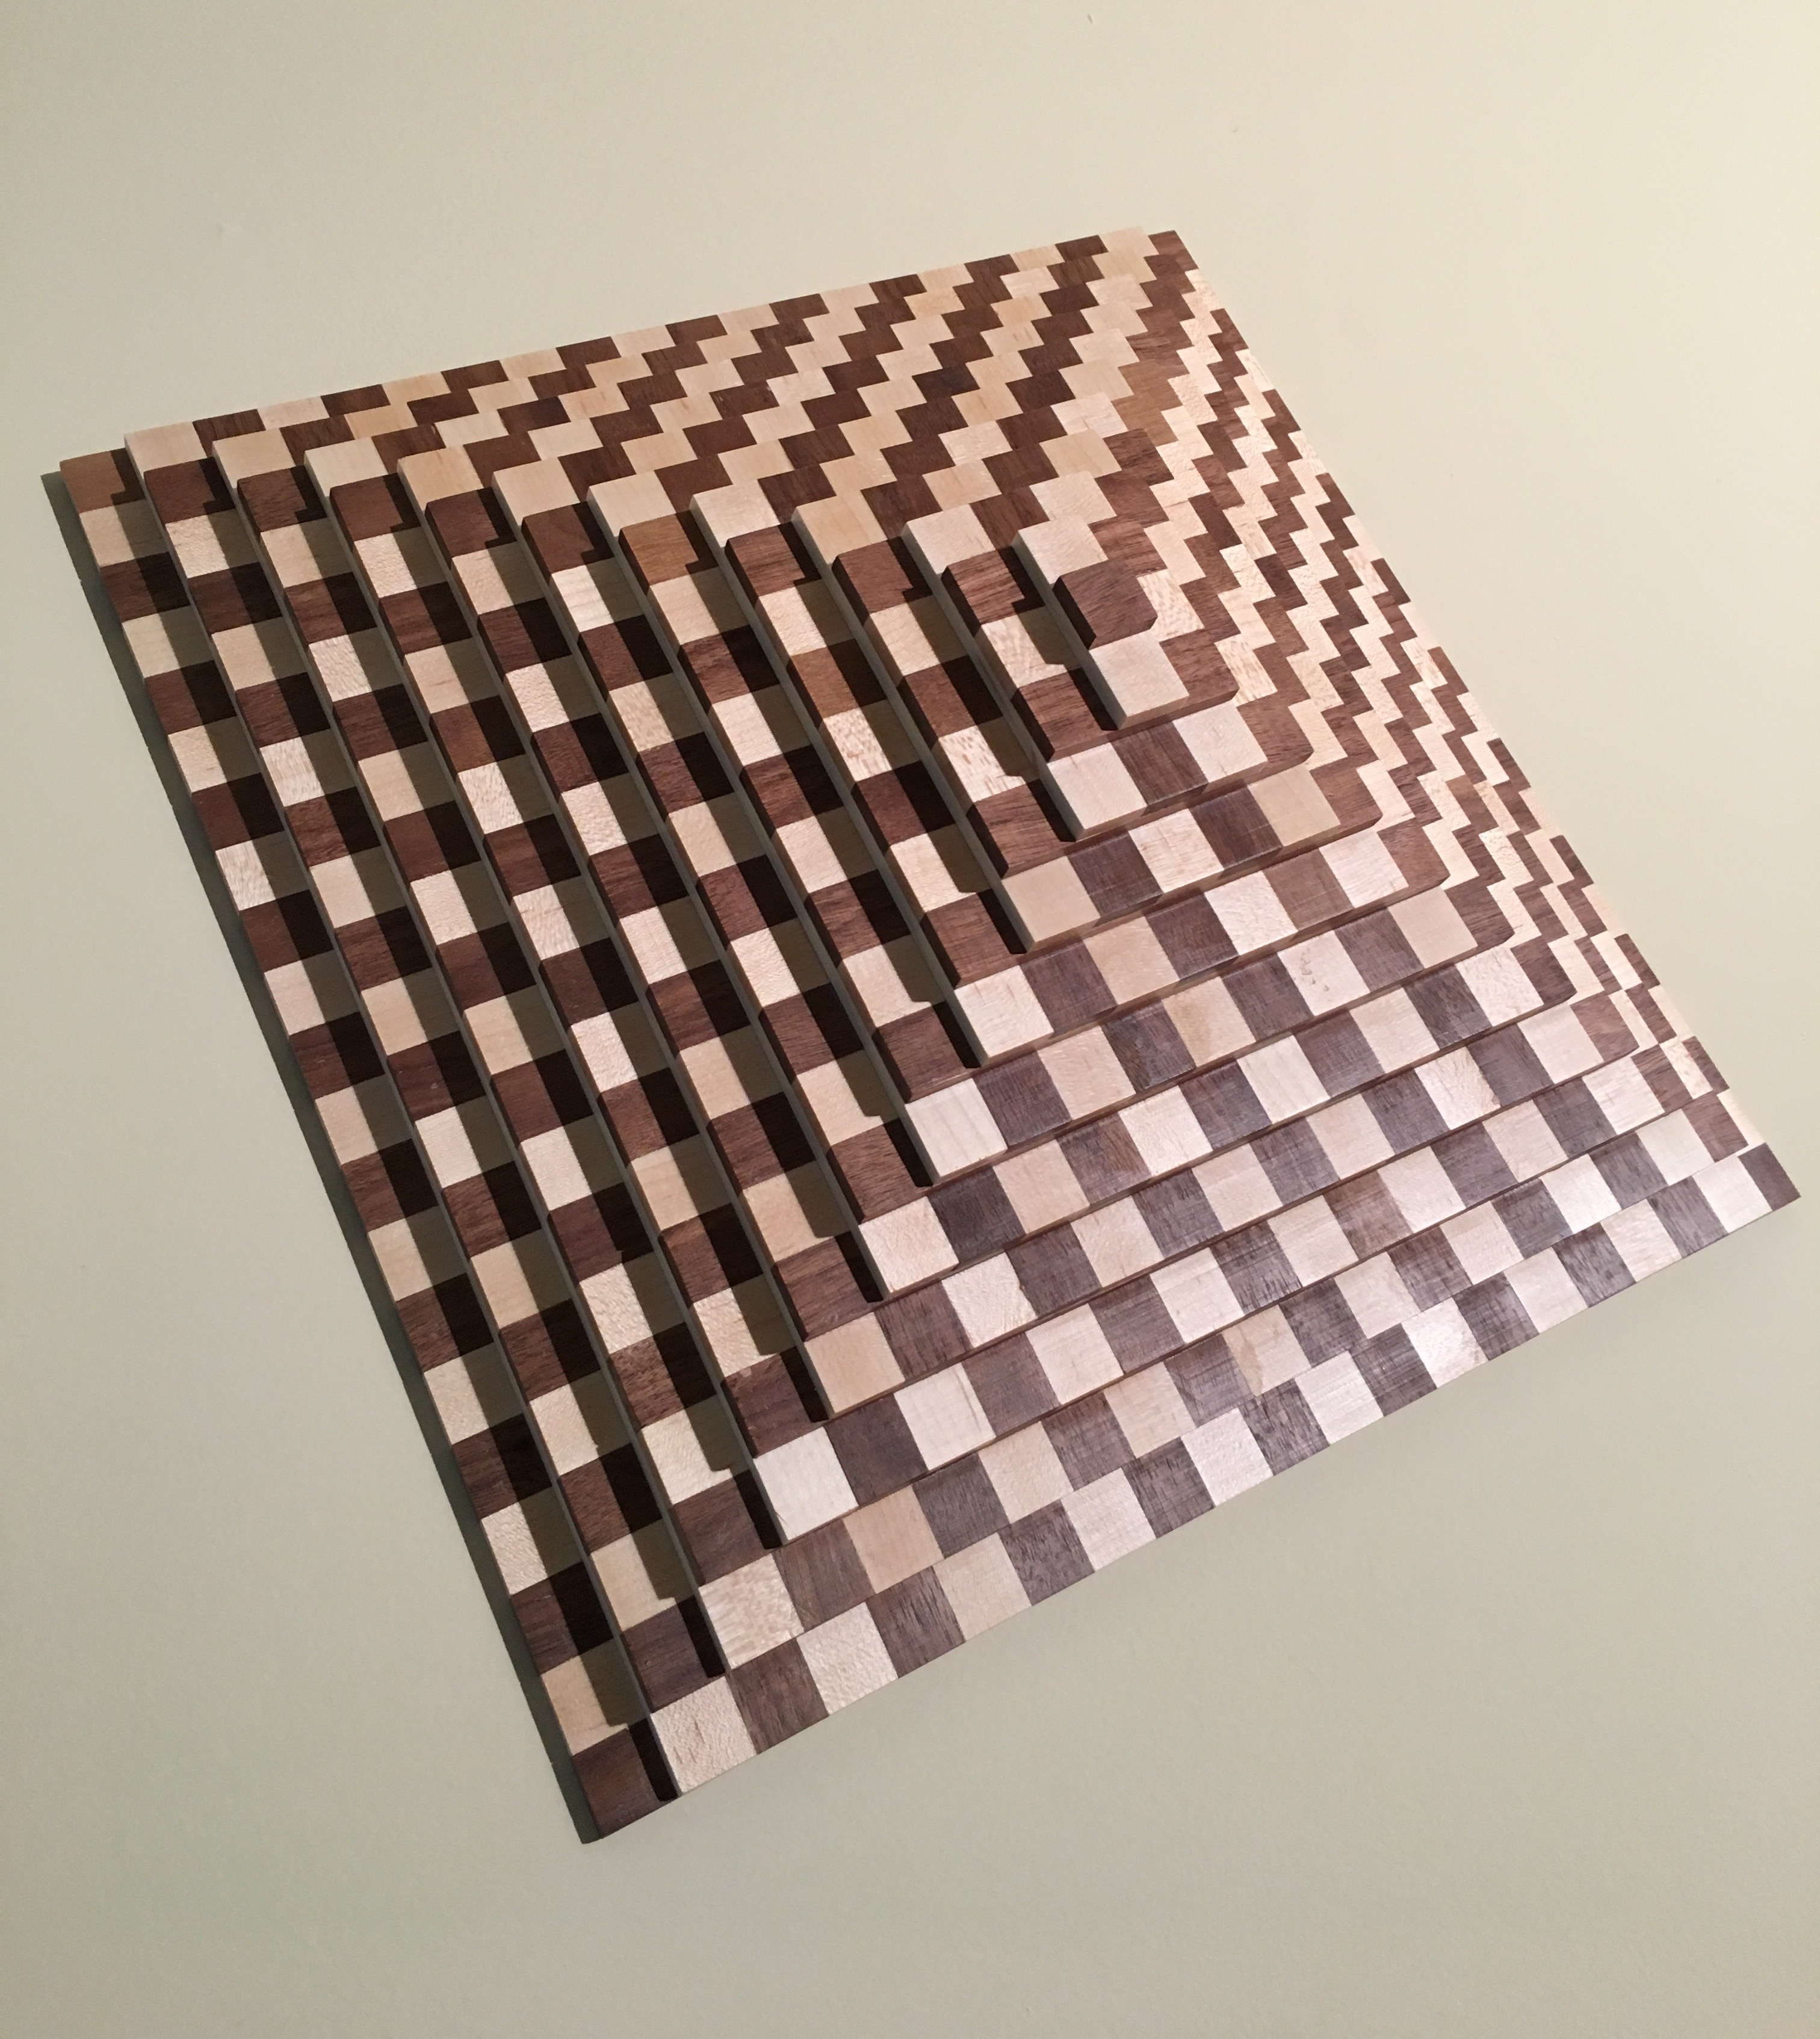 Chestnut and Maple strips layered to form a solid pyramid